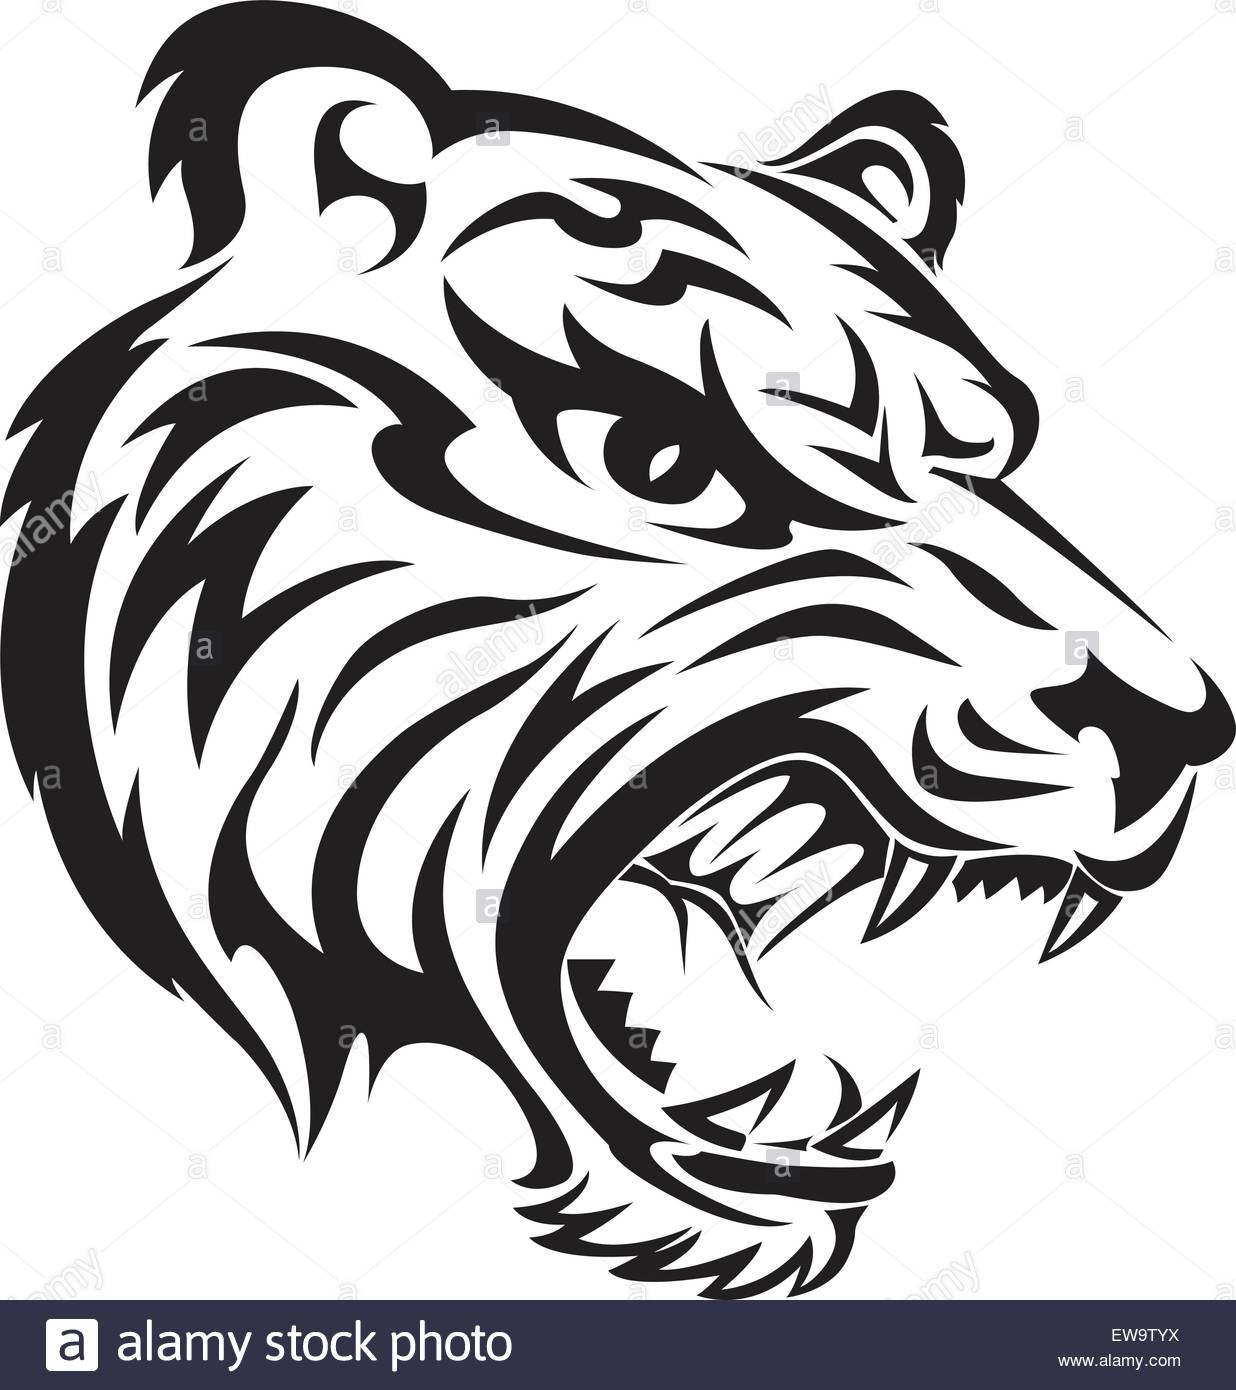 1236x1390 Angry Tiger Face Tattoo Design, Vintage Engraved Illustration